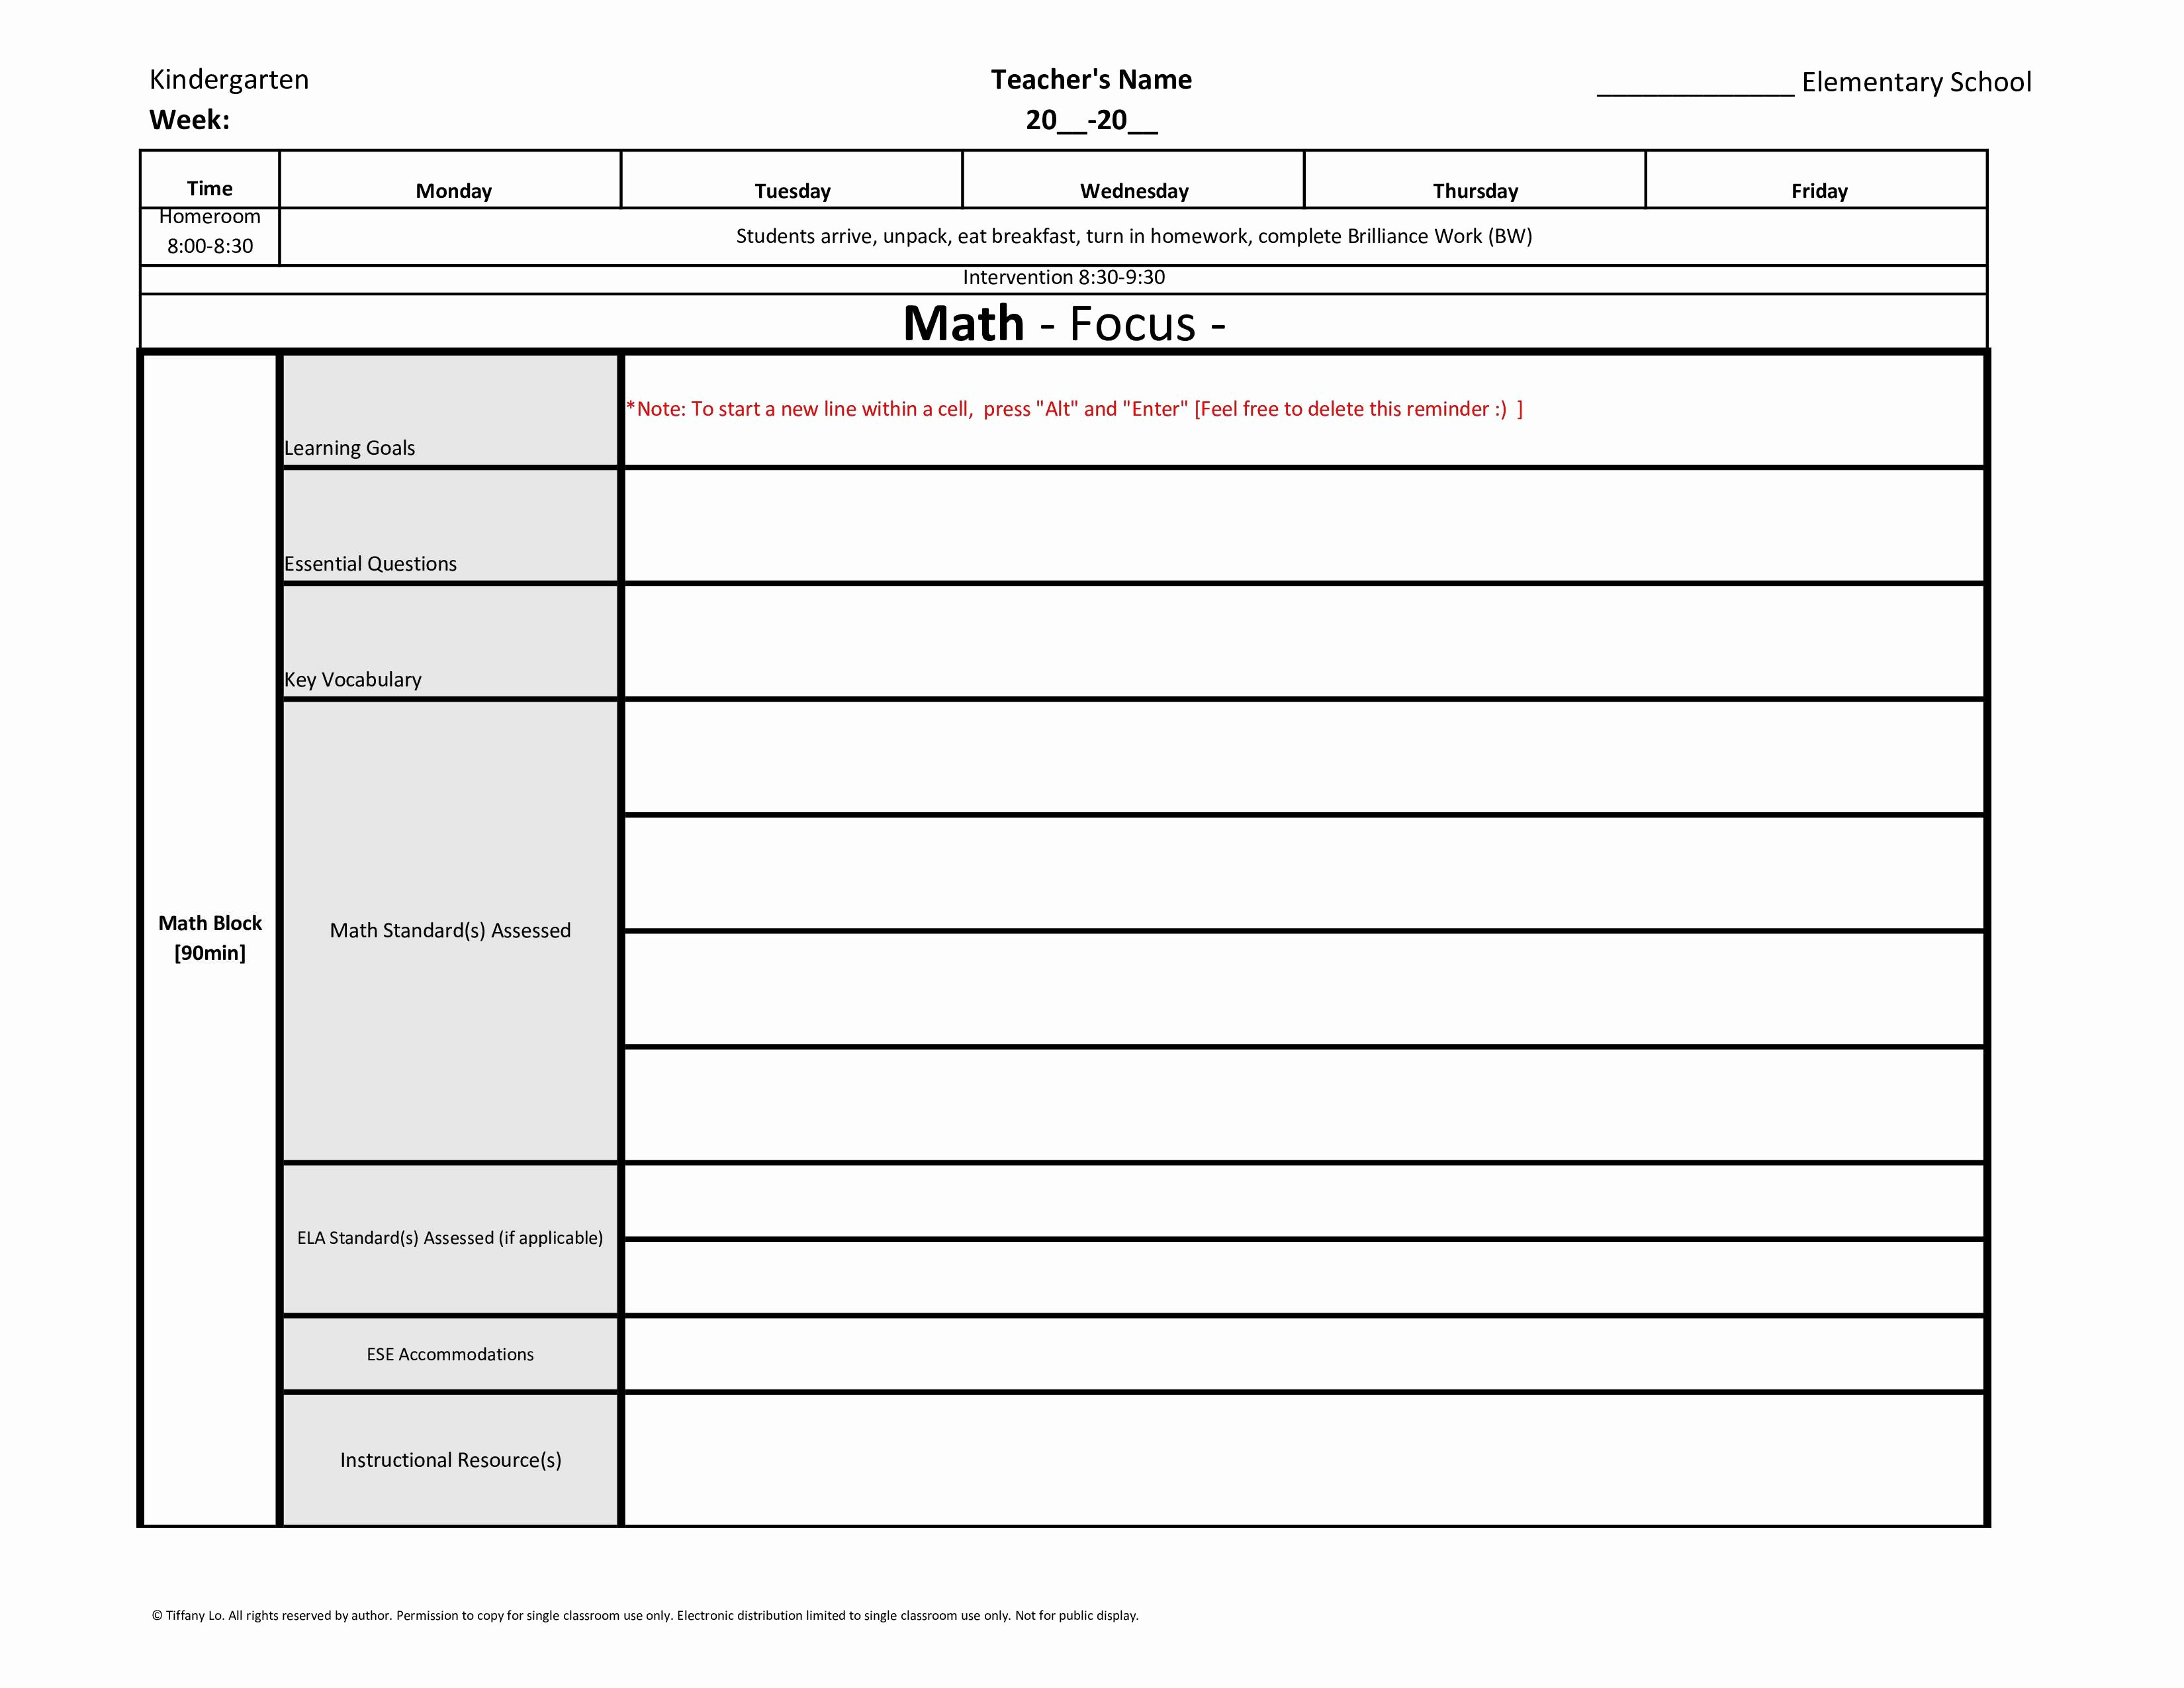 Weekly Lesson Plan Template Elementary Elegant Kindergarten Weekly Lesson Plan Template W Florida